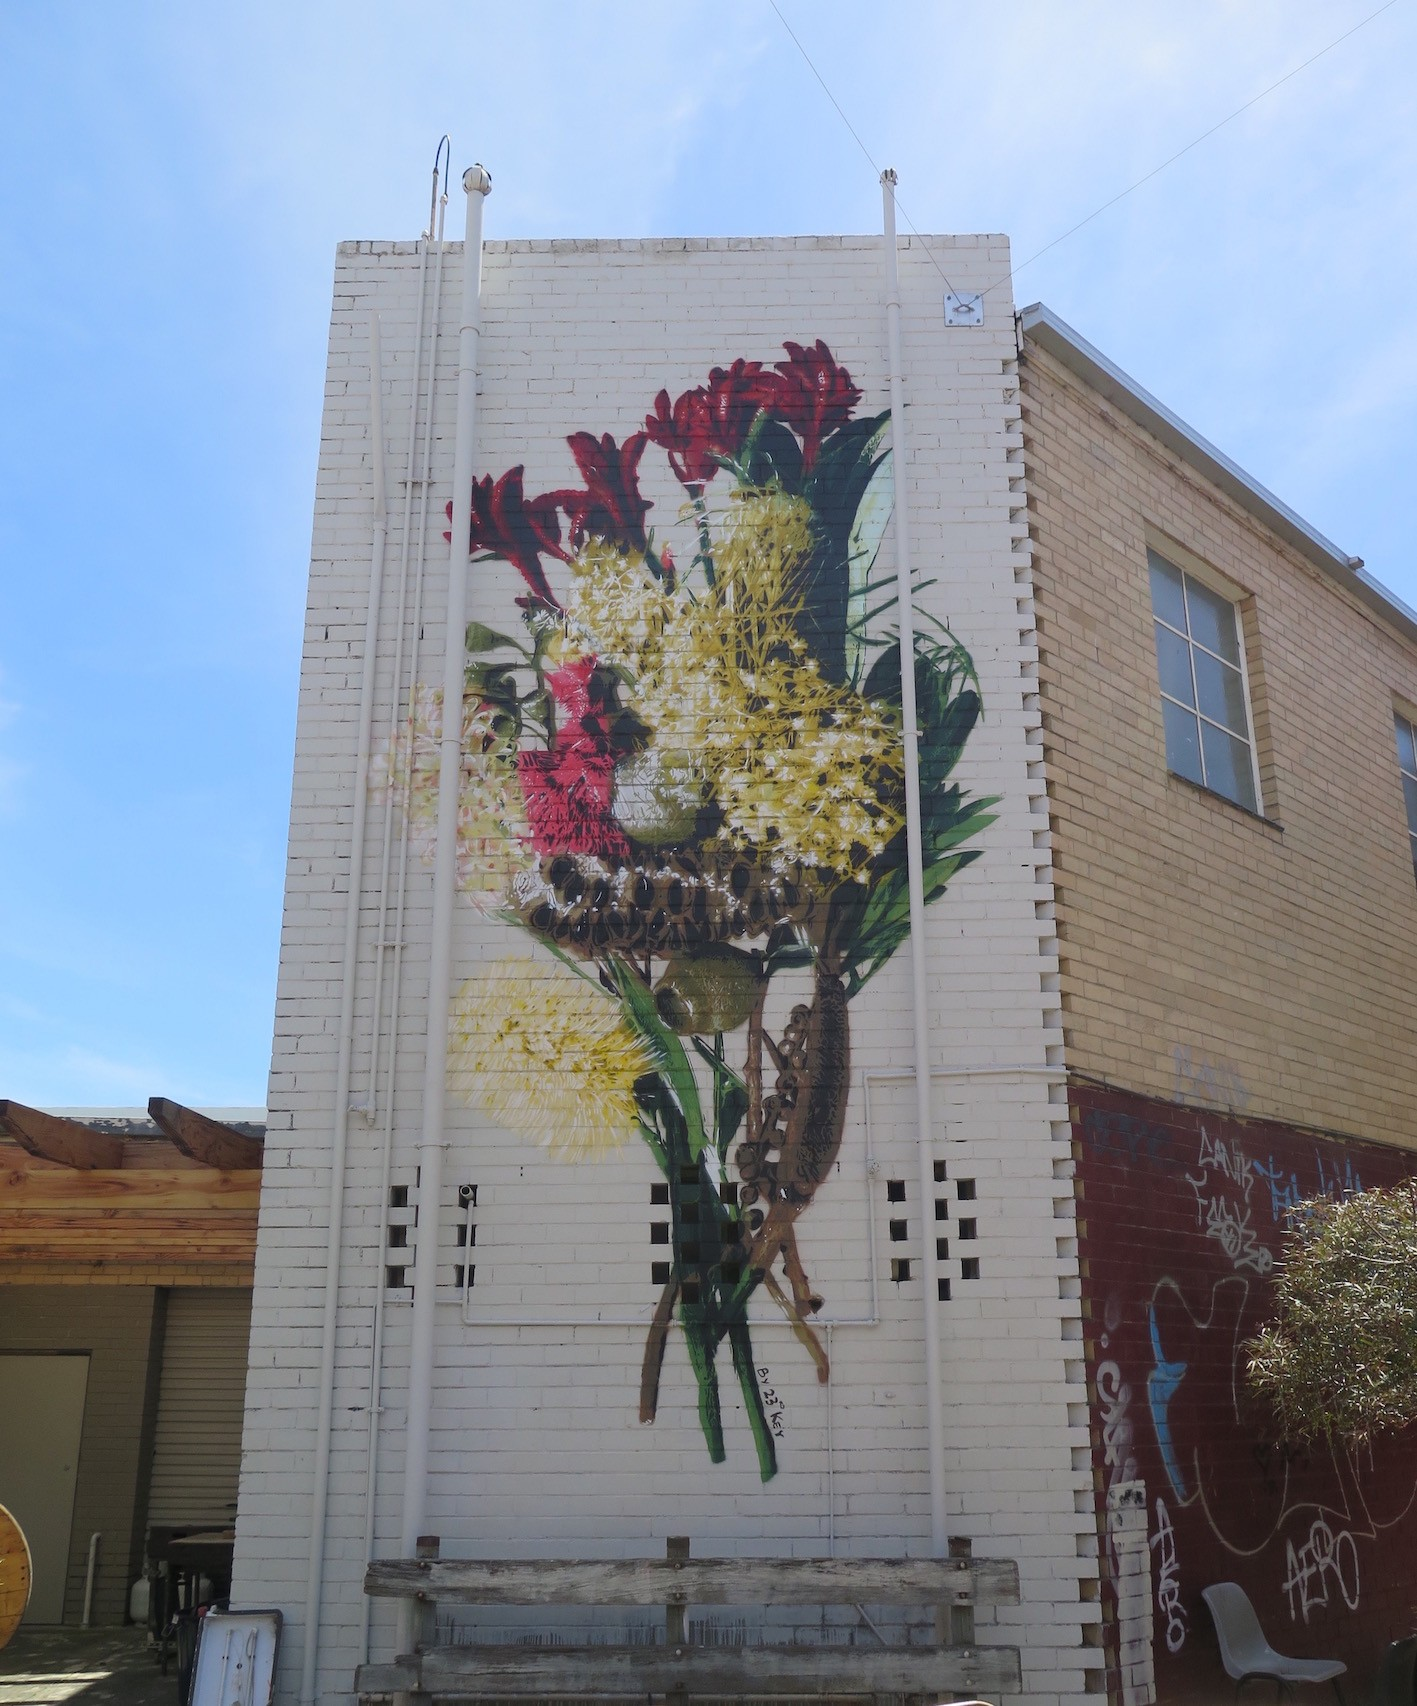 urban art project in Melbourne